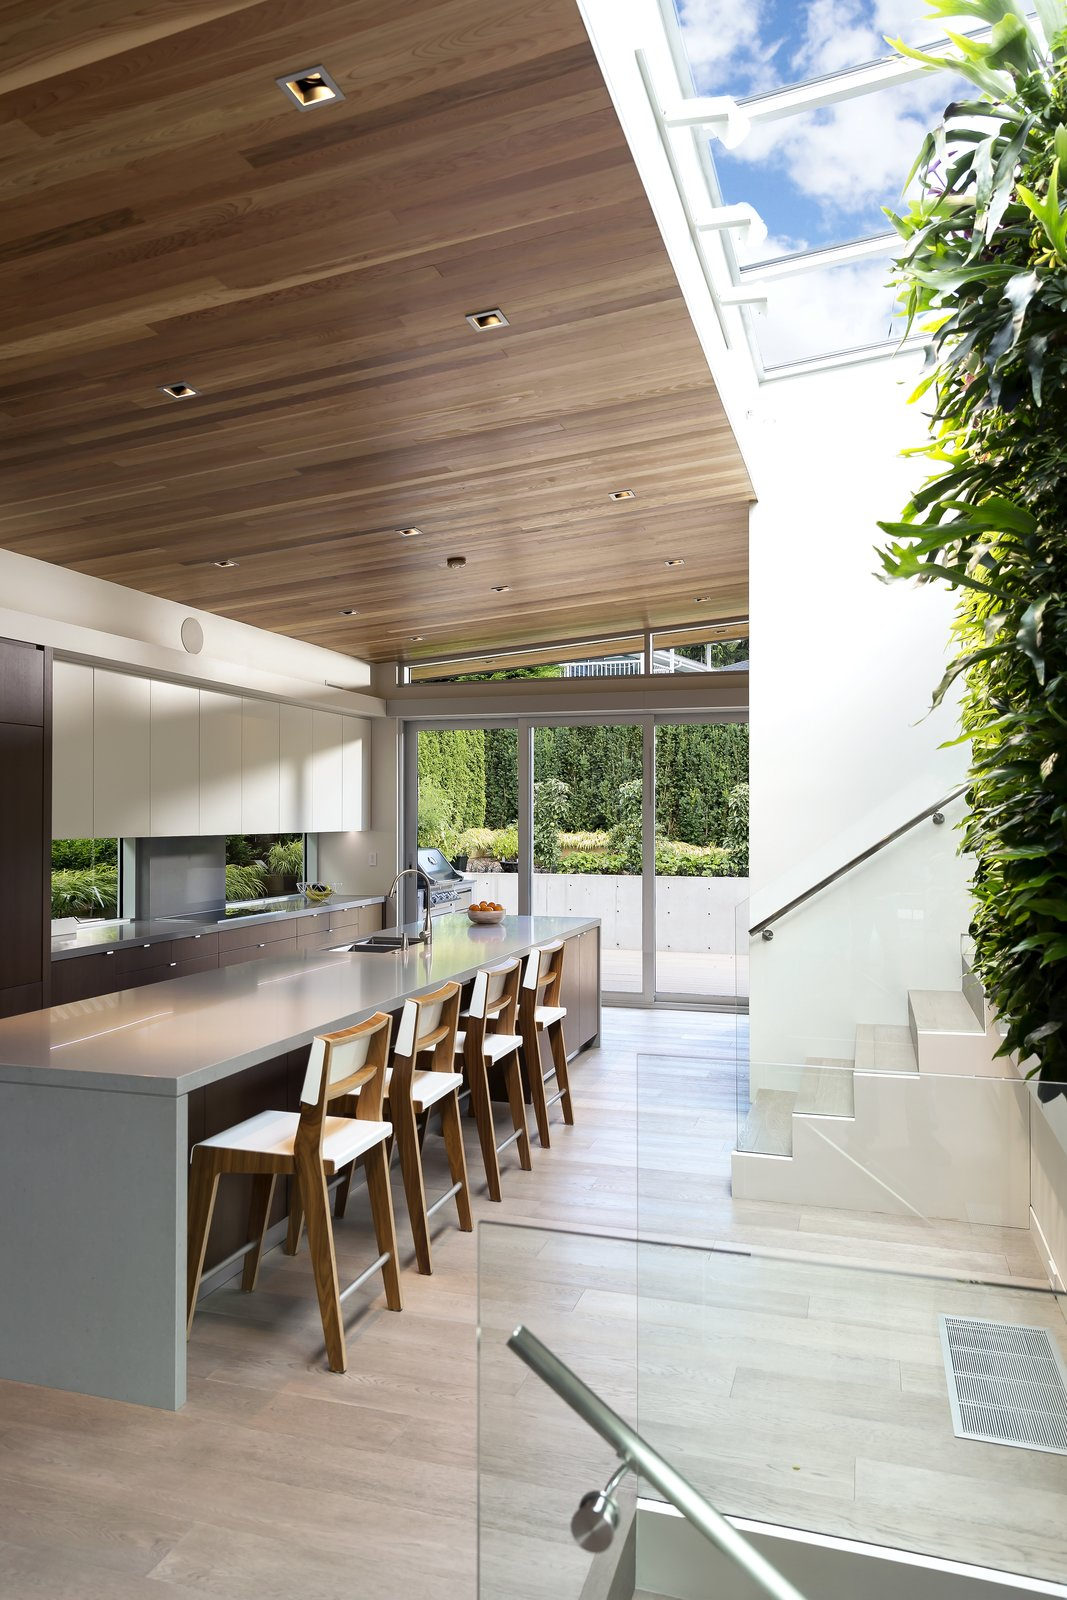 Garden Wall Residence, Kitchen  Garden Wall Residence by Garret Cord Werner